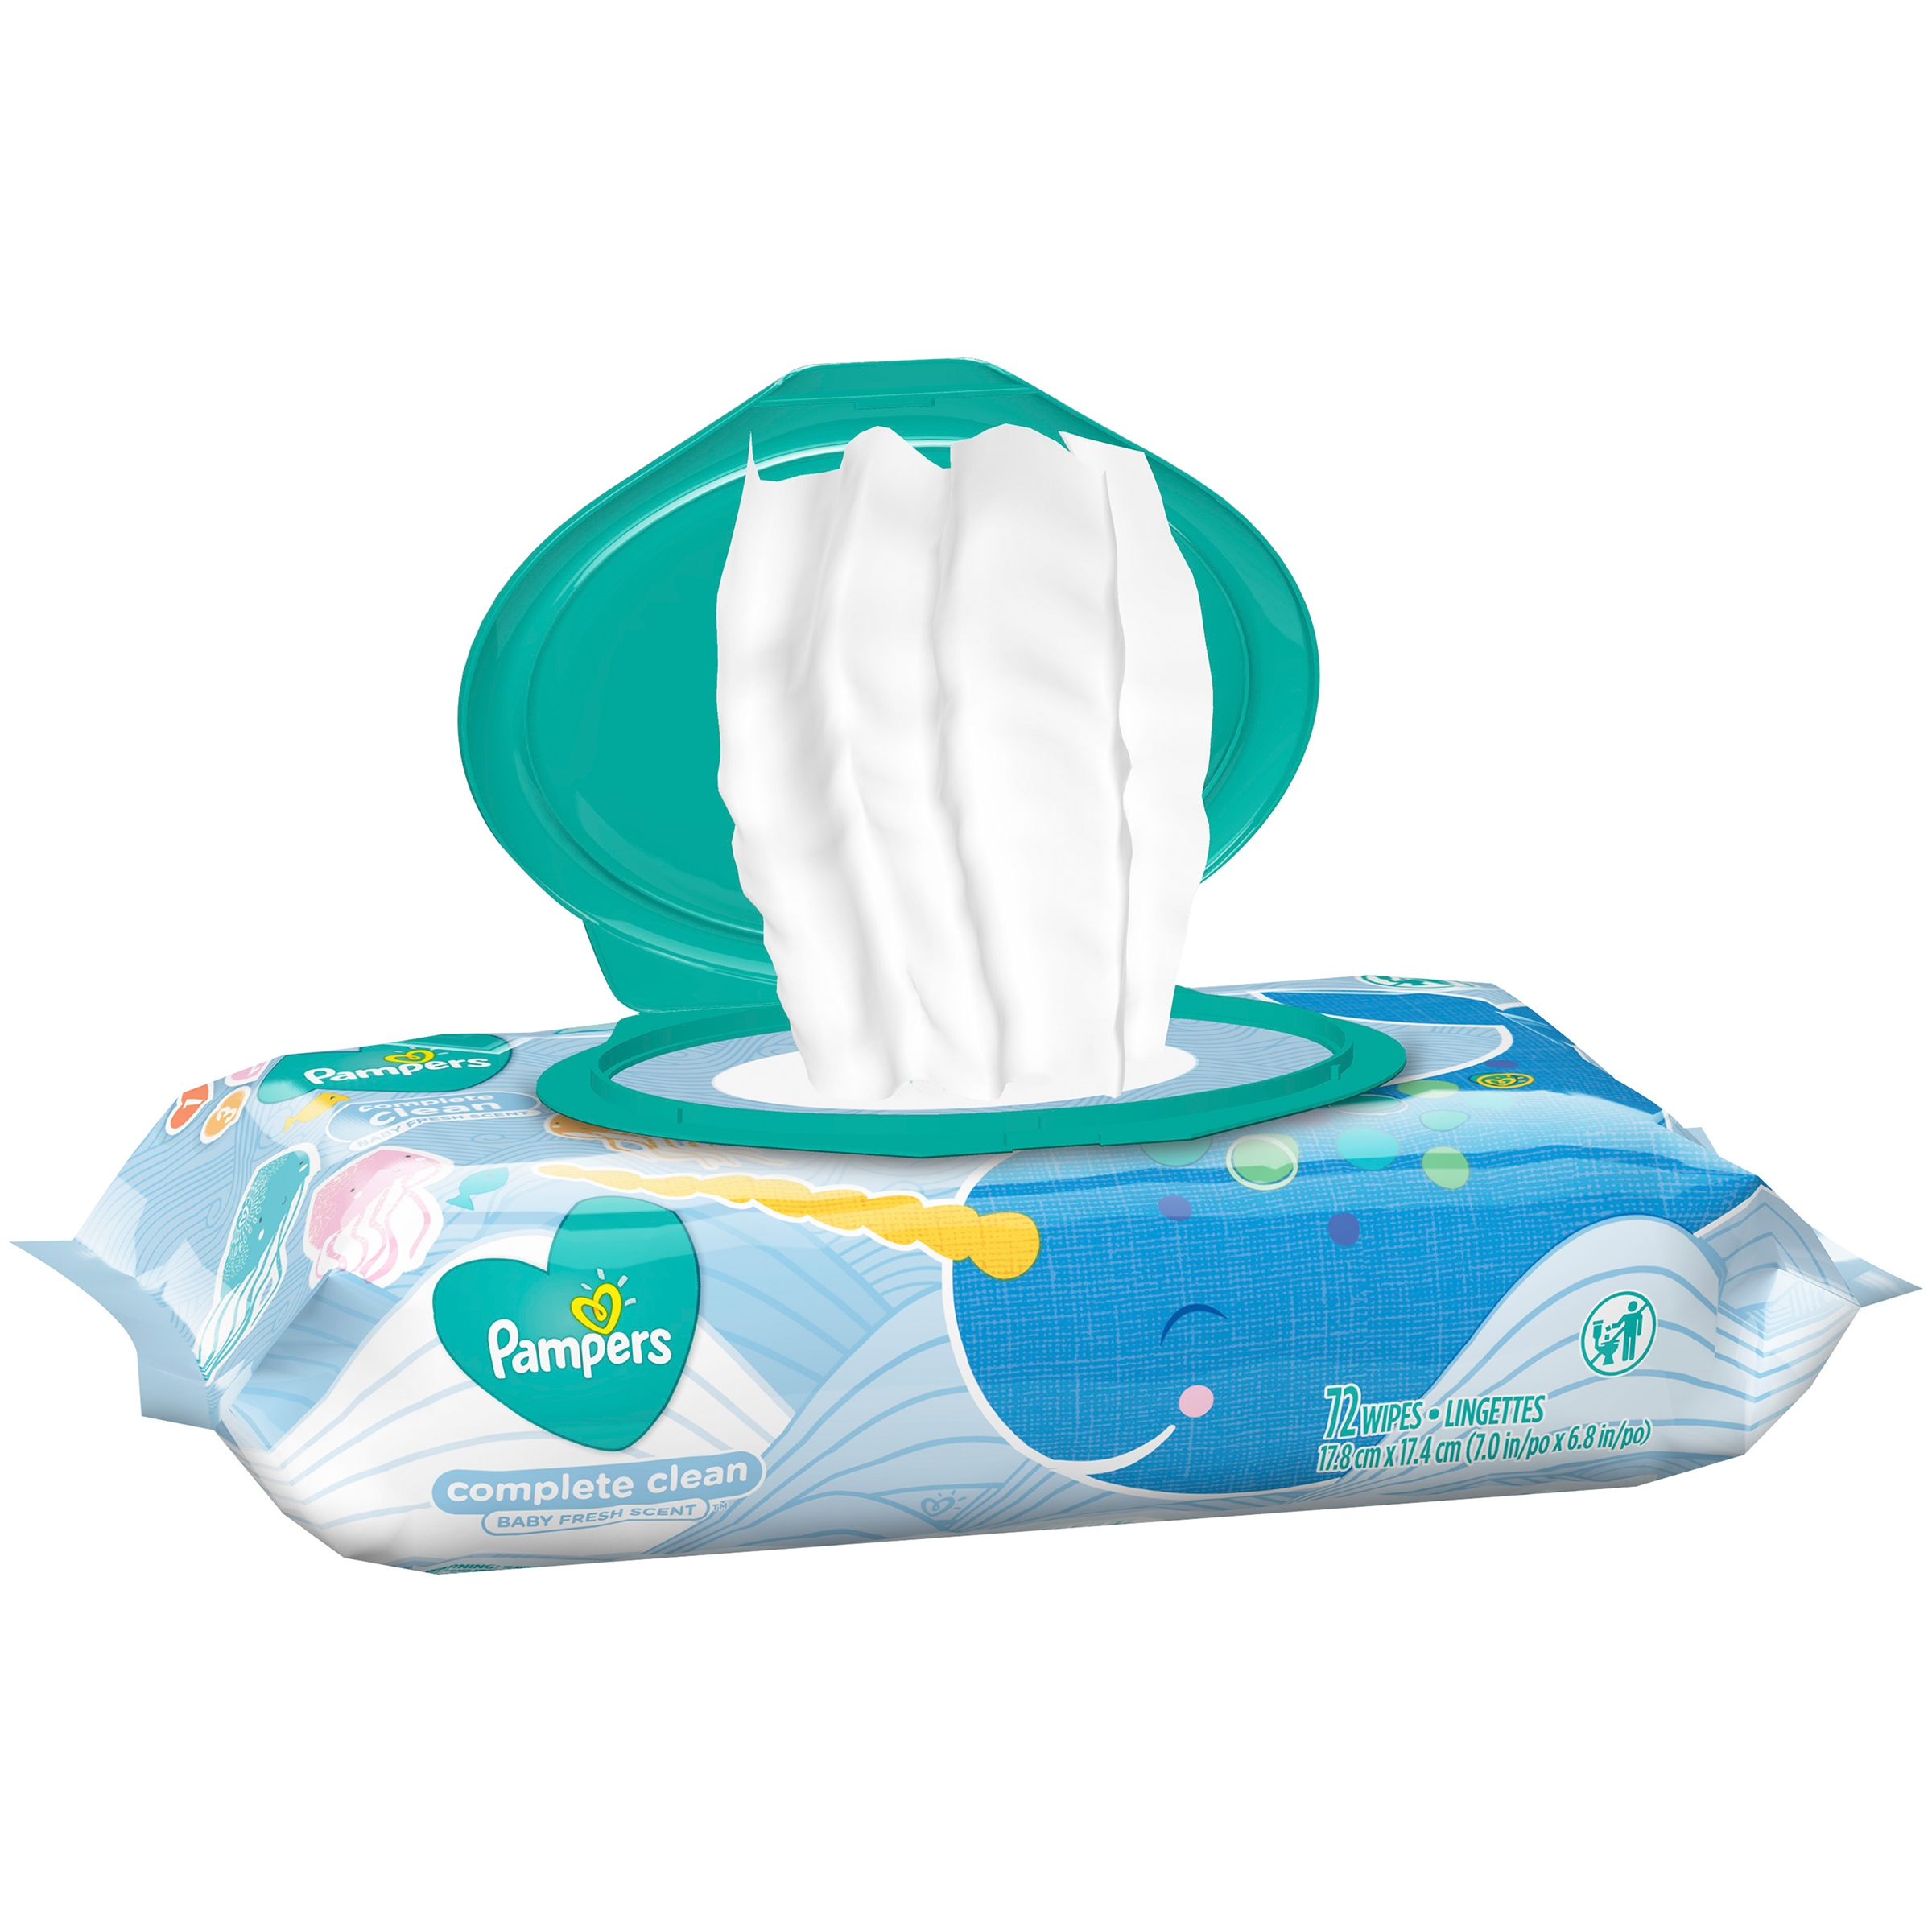 Pampers Complete Clean Baby Fresh Scent Baby Wipes 72 Count Pack